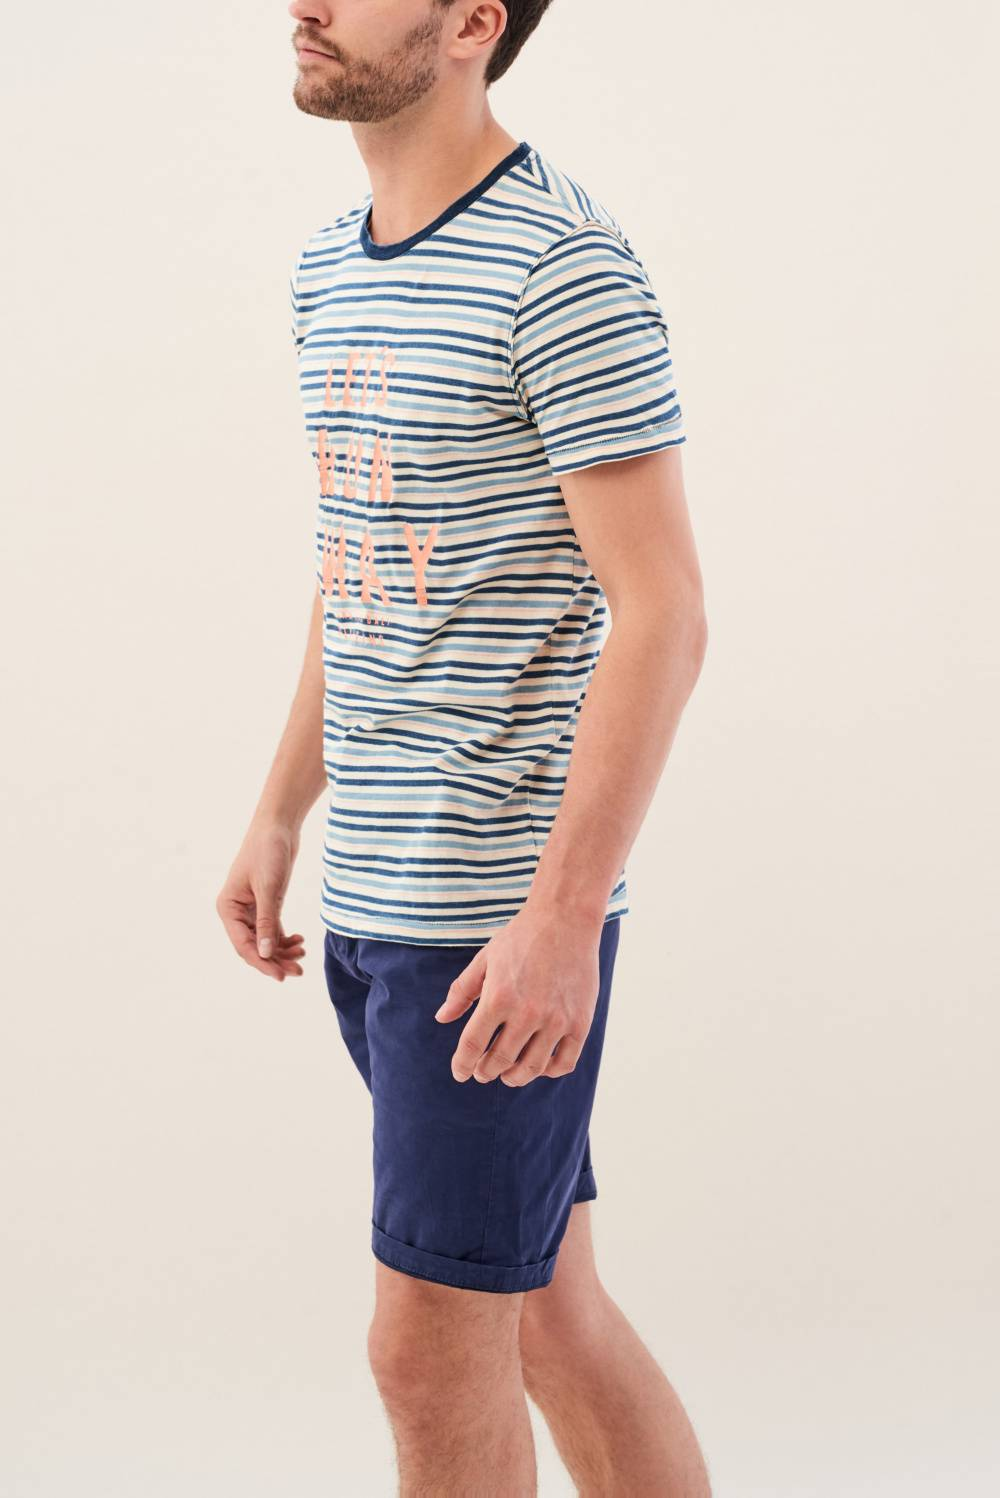 Striped t-shirt - Salsa